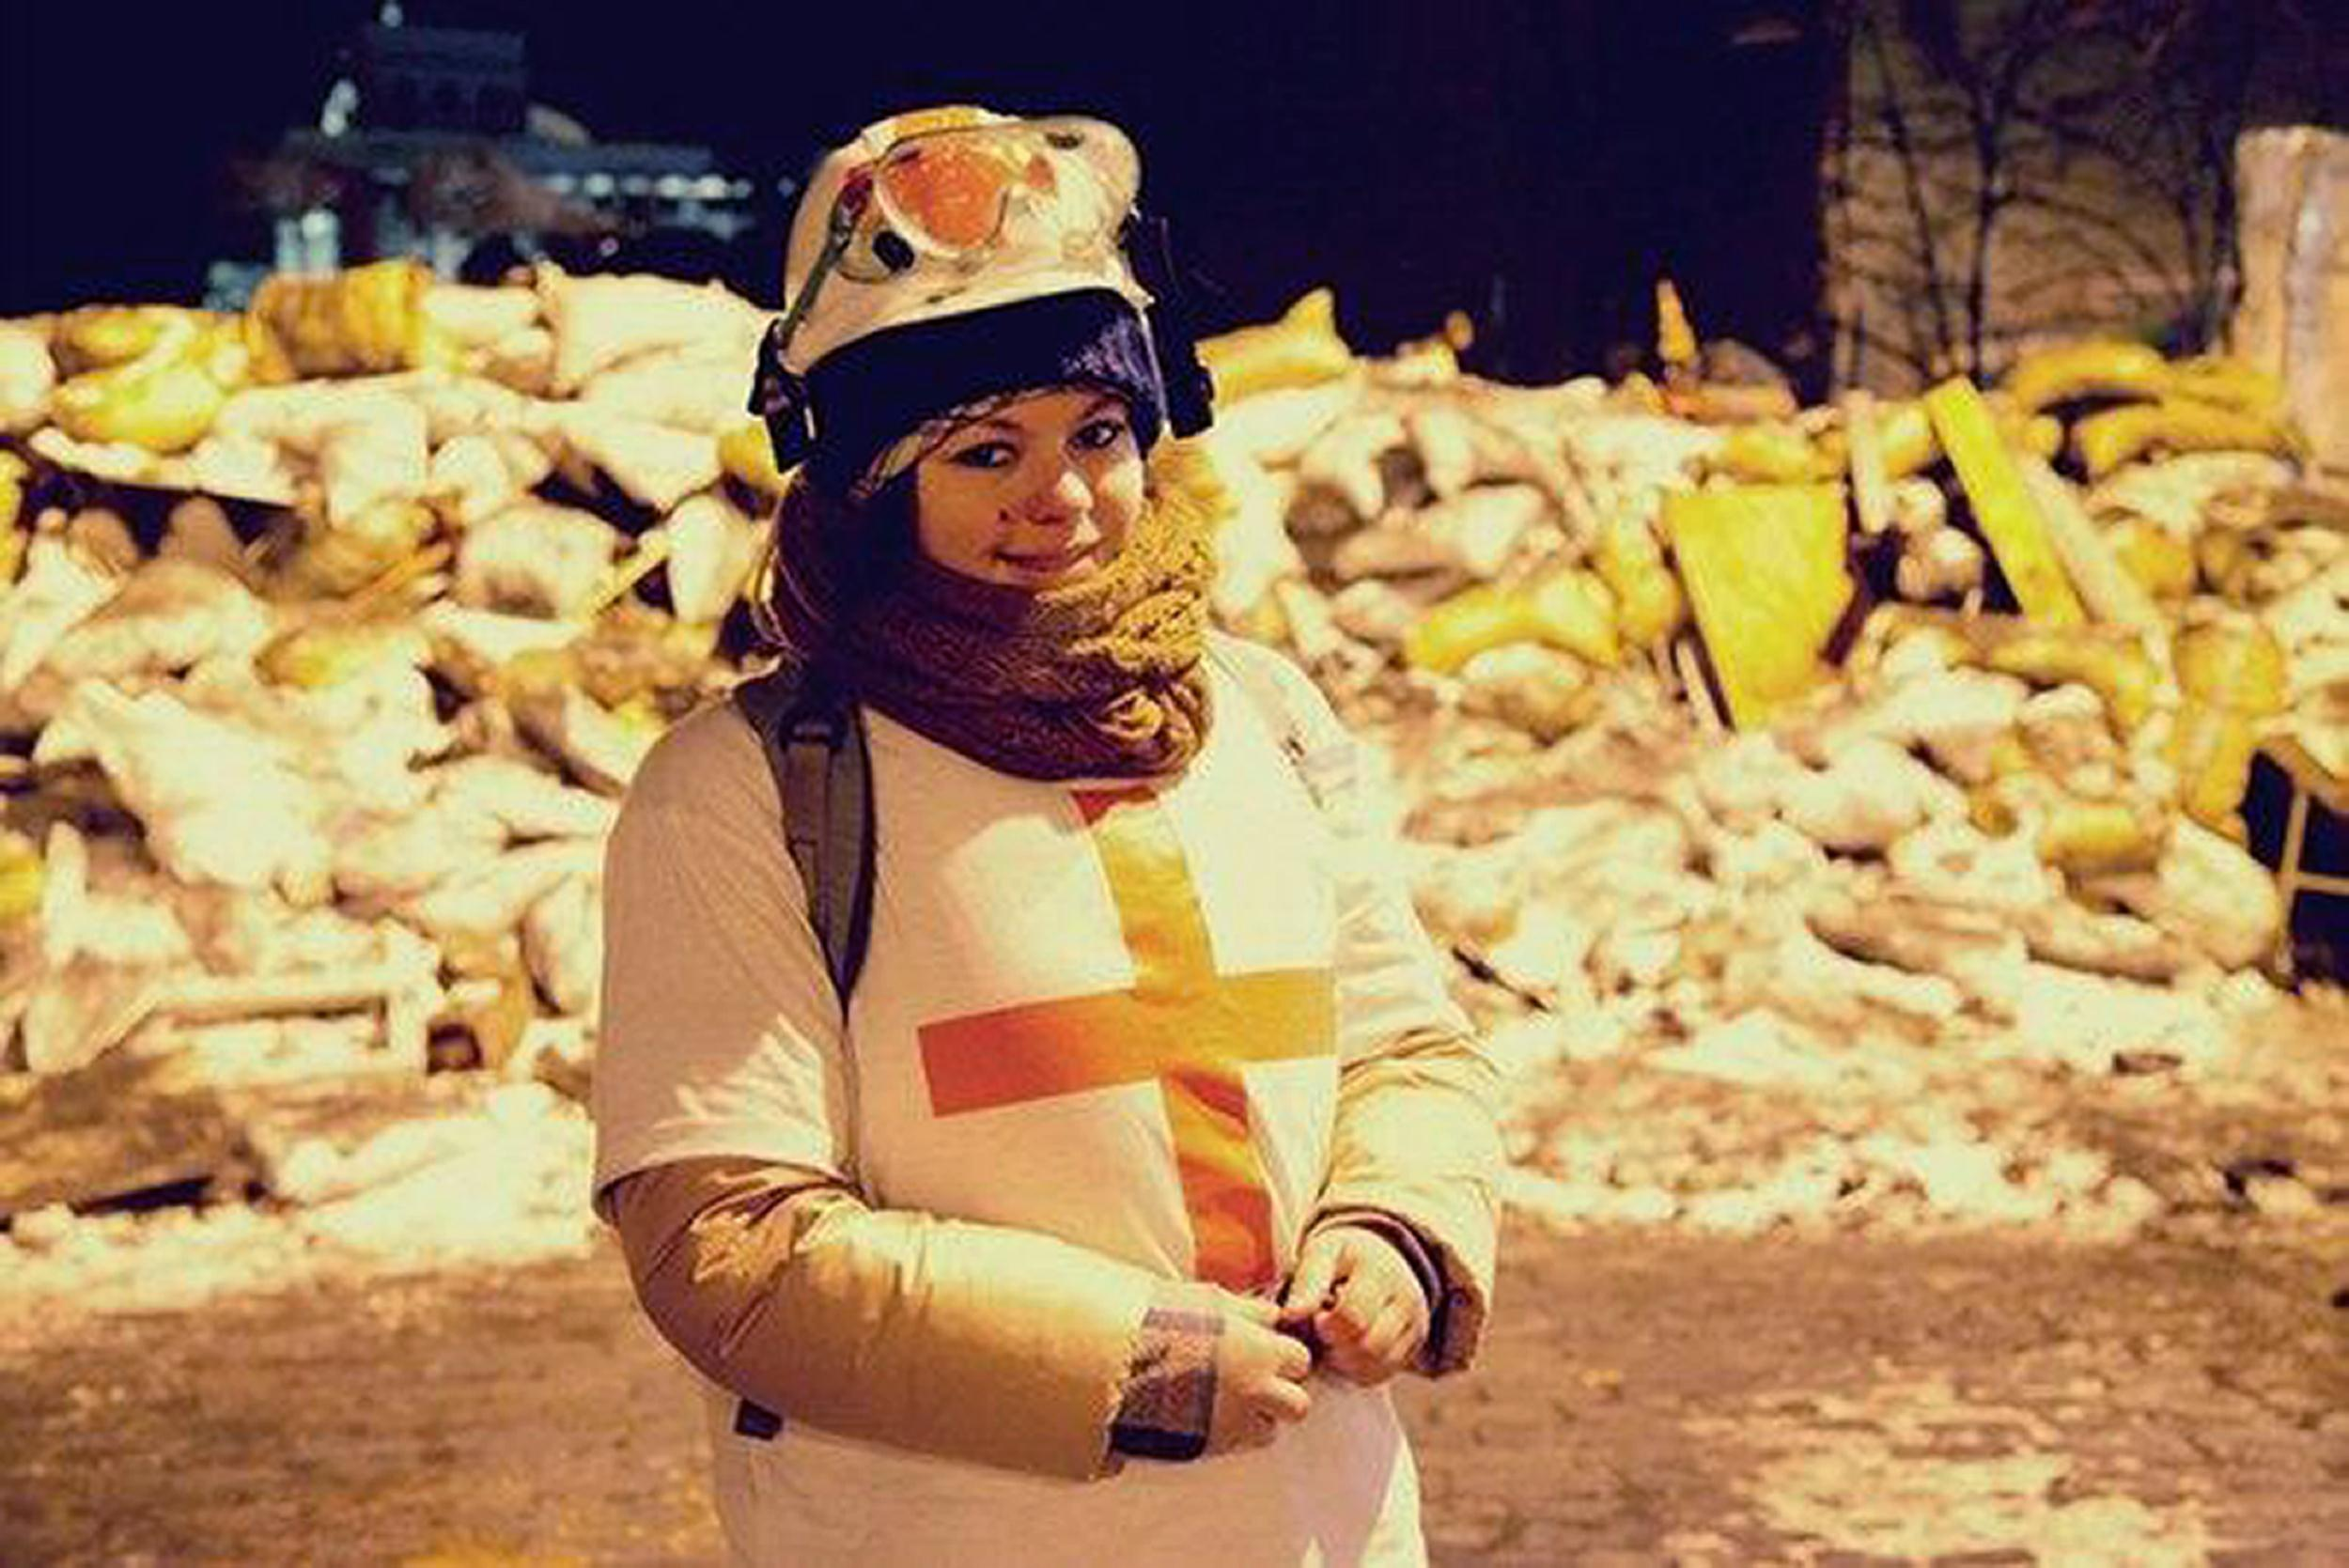 21-year-old Olesya Zhukovska was struck by a bullet while working as a volunteer medic amid fierce clashes between police and anti-government protesters in Kiev, Ukraine.